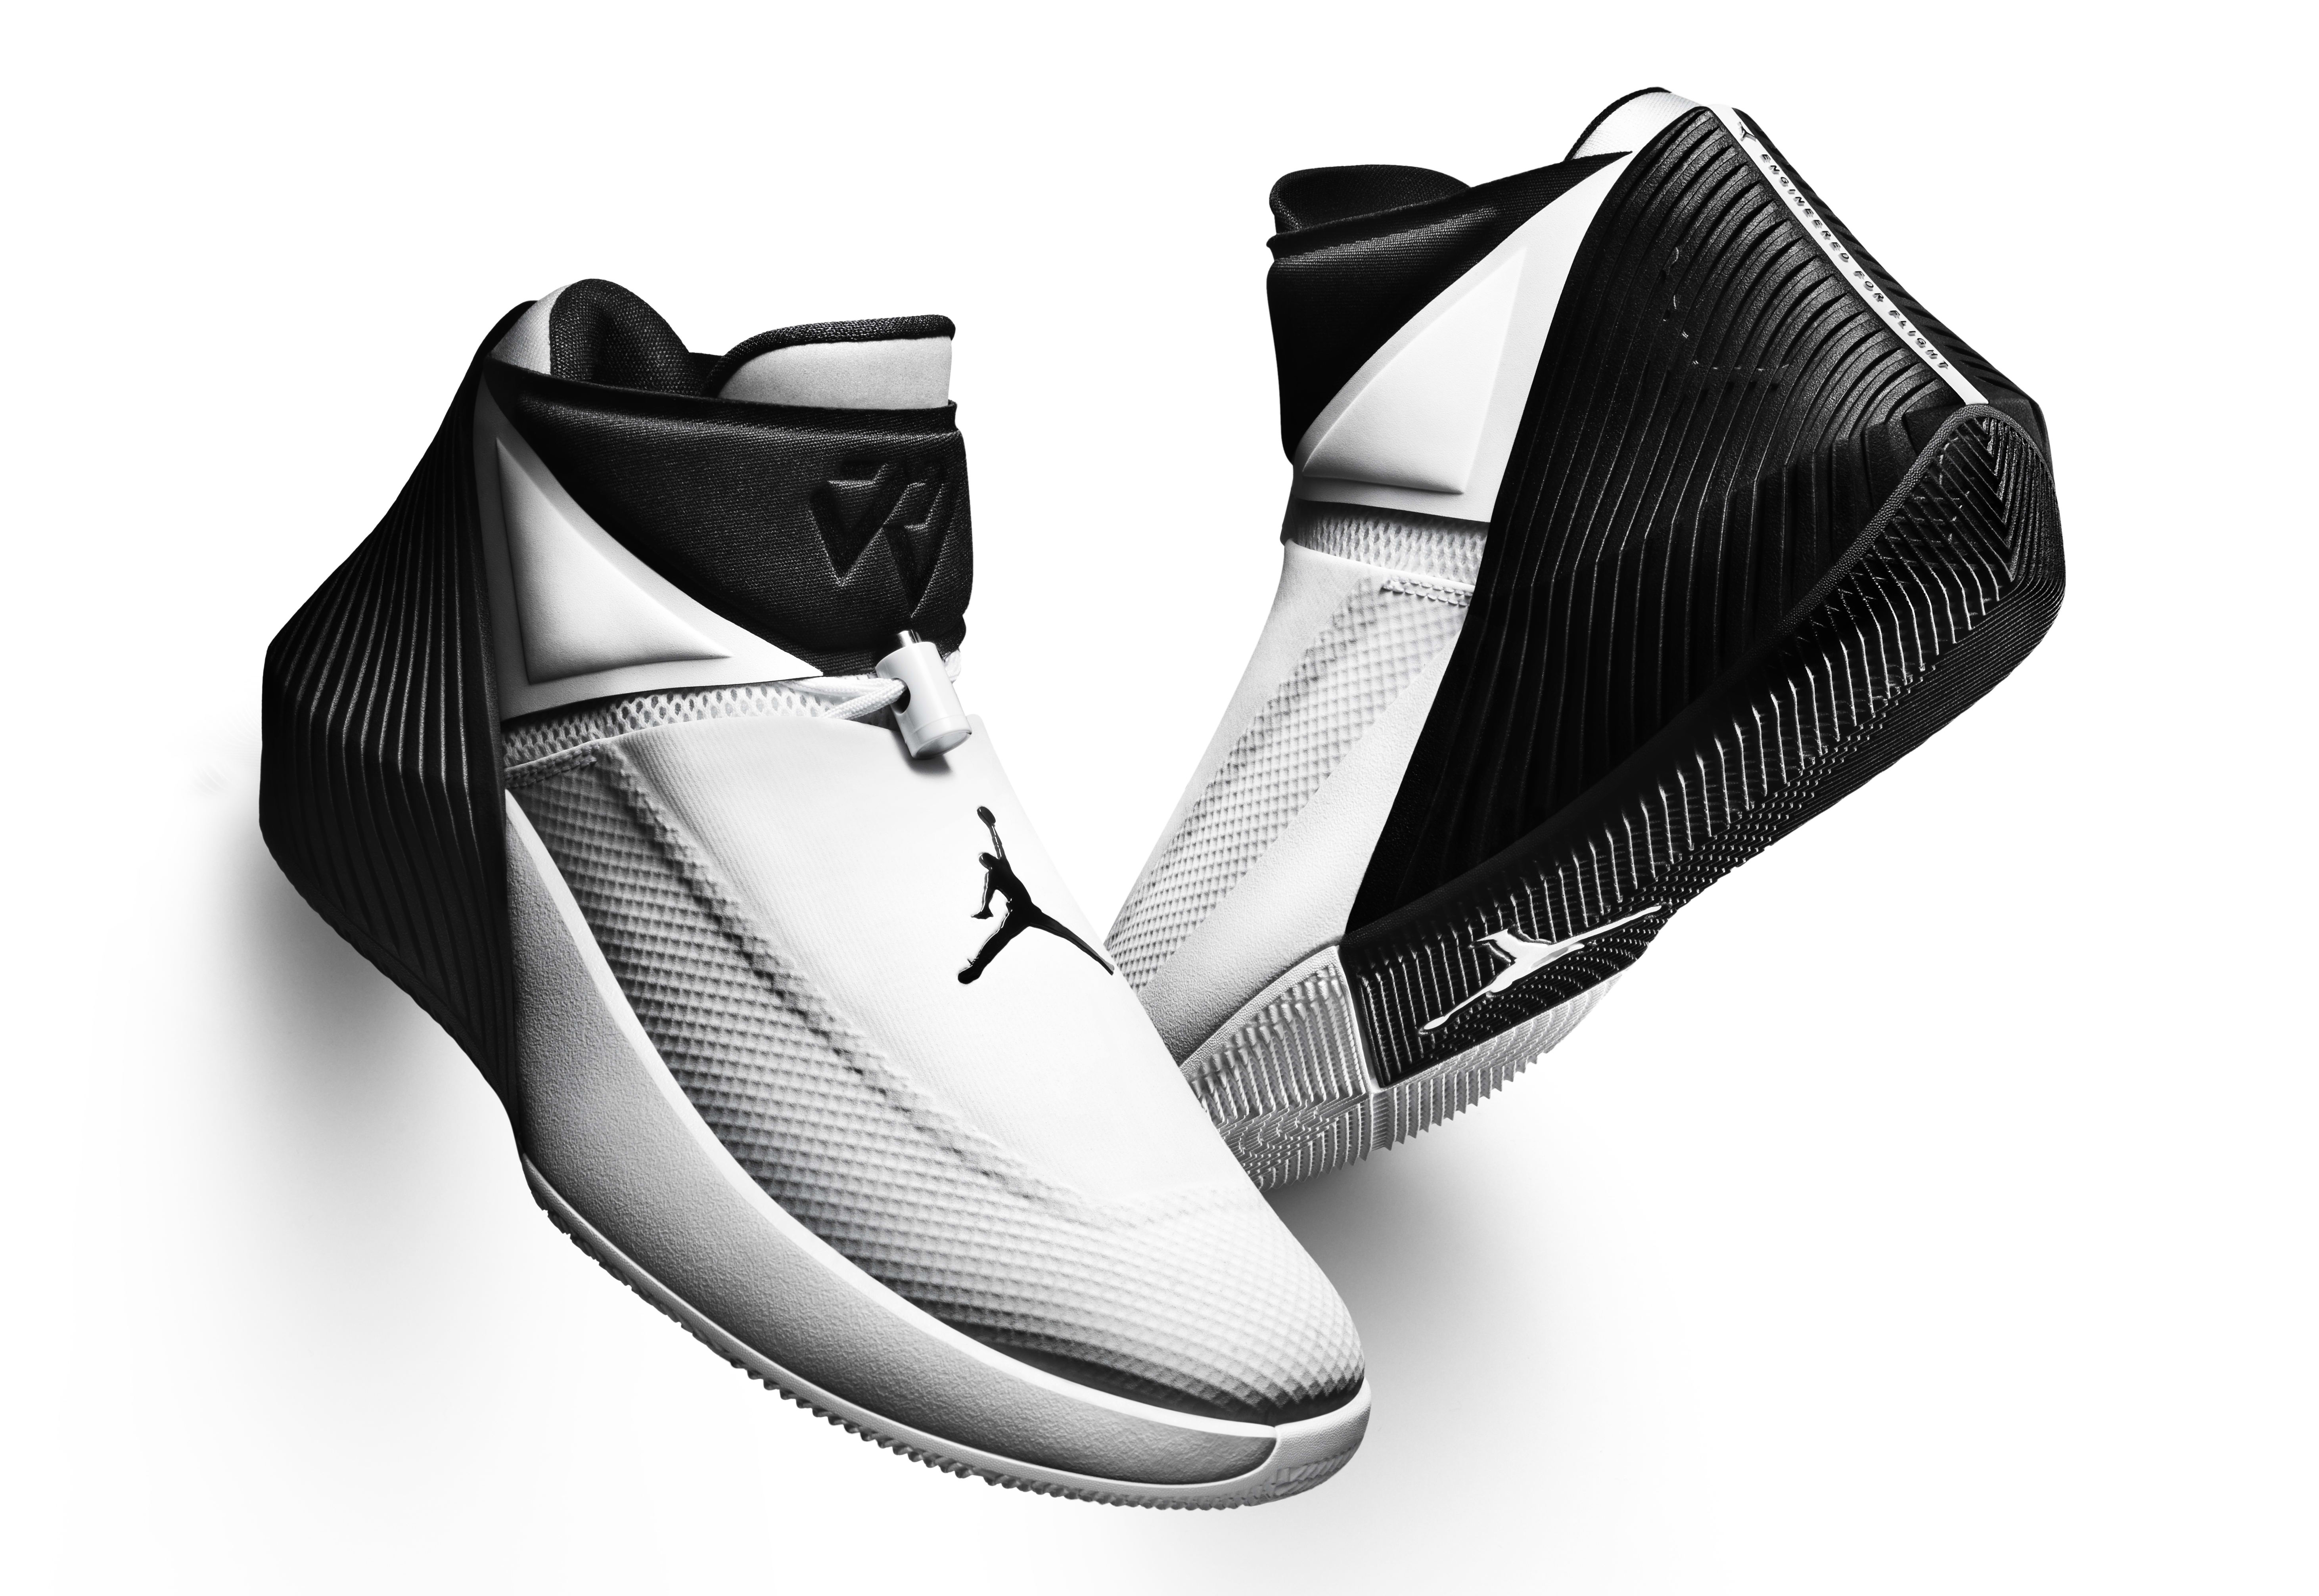 Russell Westbrook New Nike Shoes